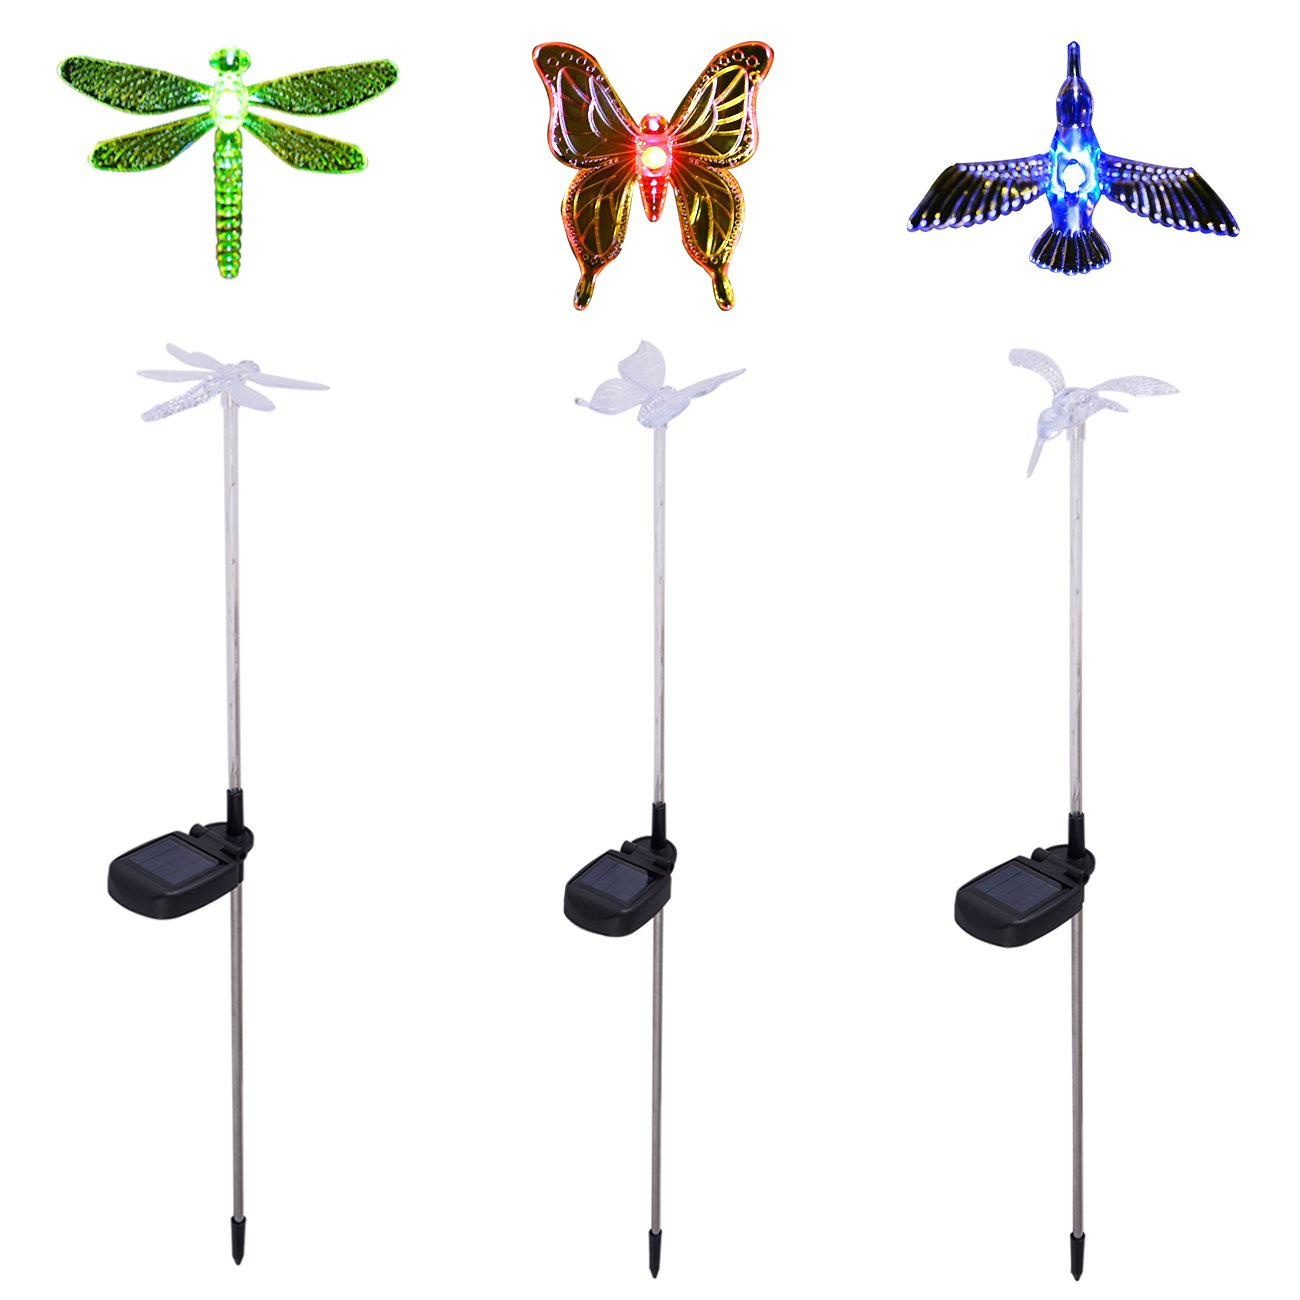 Garden Lights, 3 pack Garden Solar Lights Outdoor Multi-color Changing LED Hummingbird, Dragonfly, Butterfly Lights ,with a White LED Light Stake for Garden Decoration by ZFengling